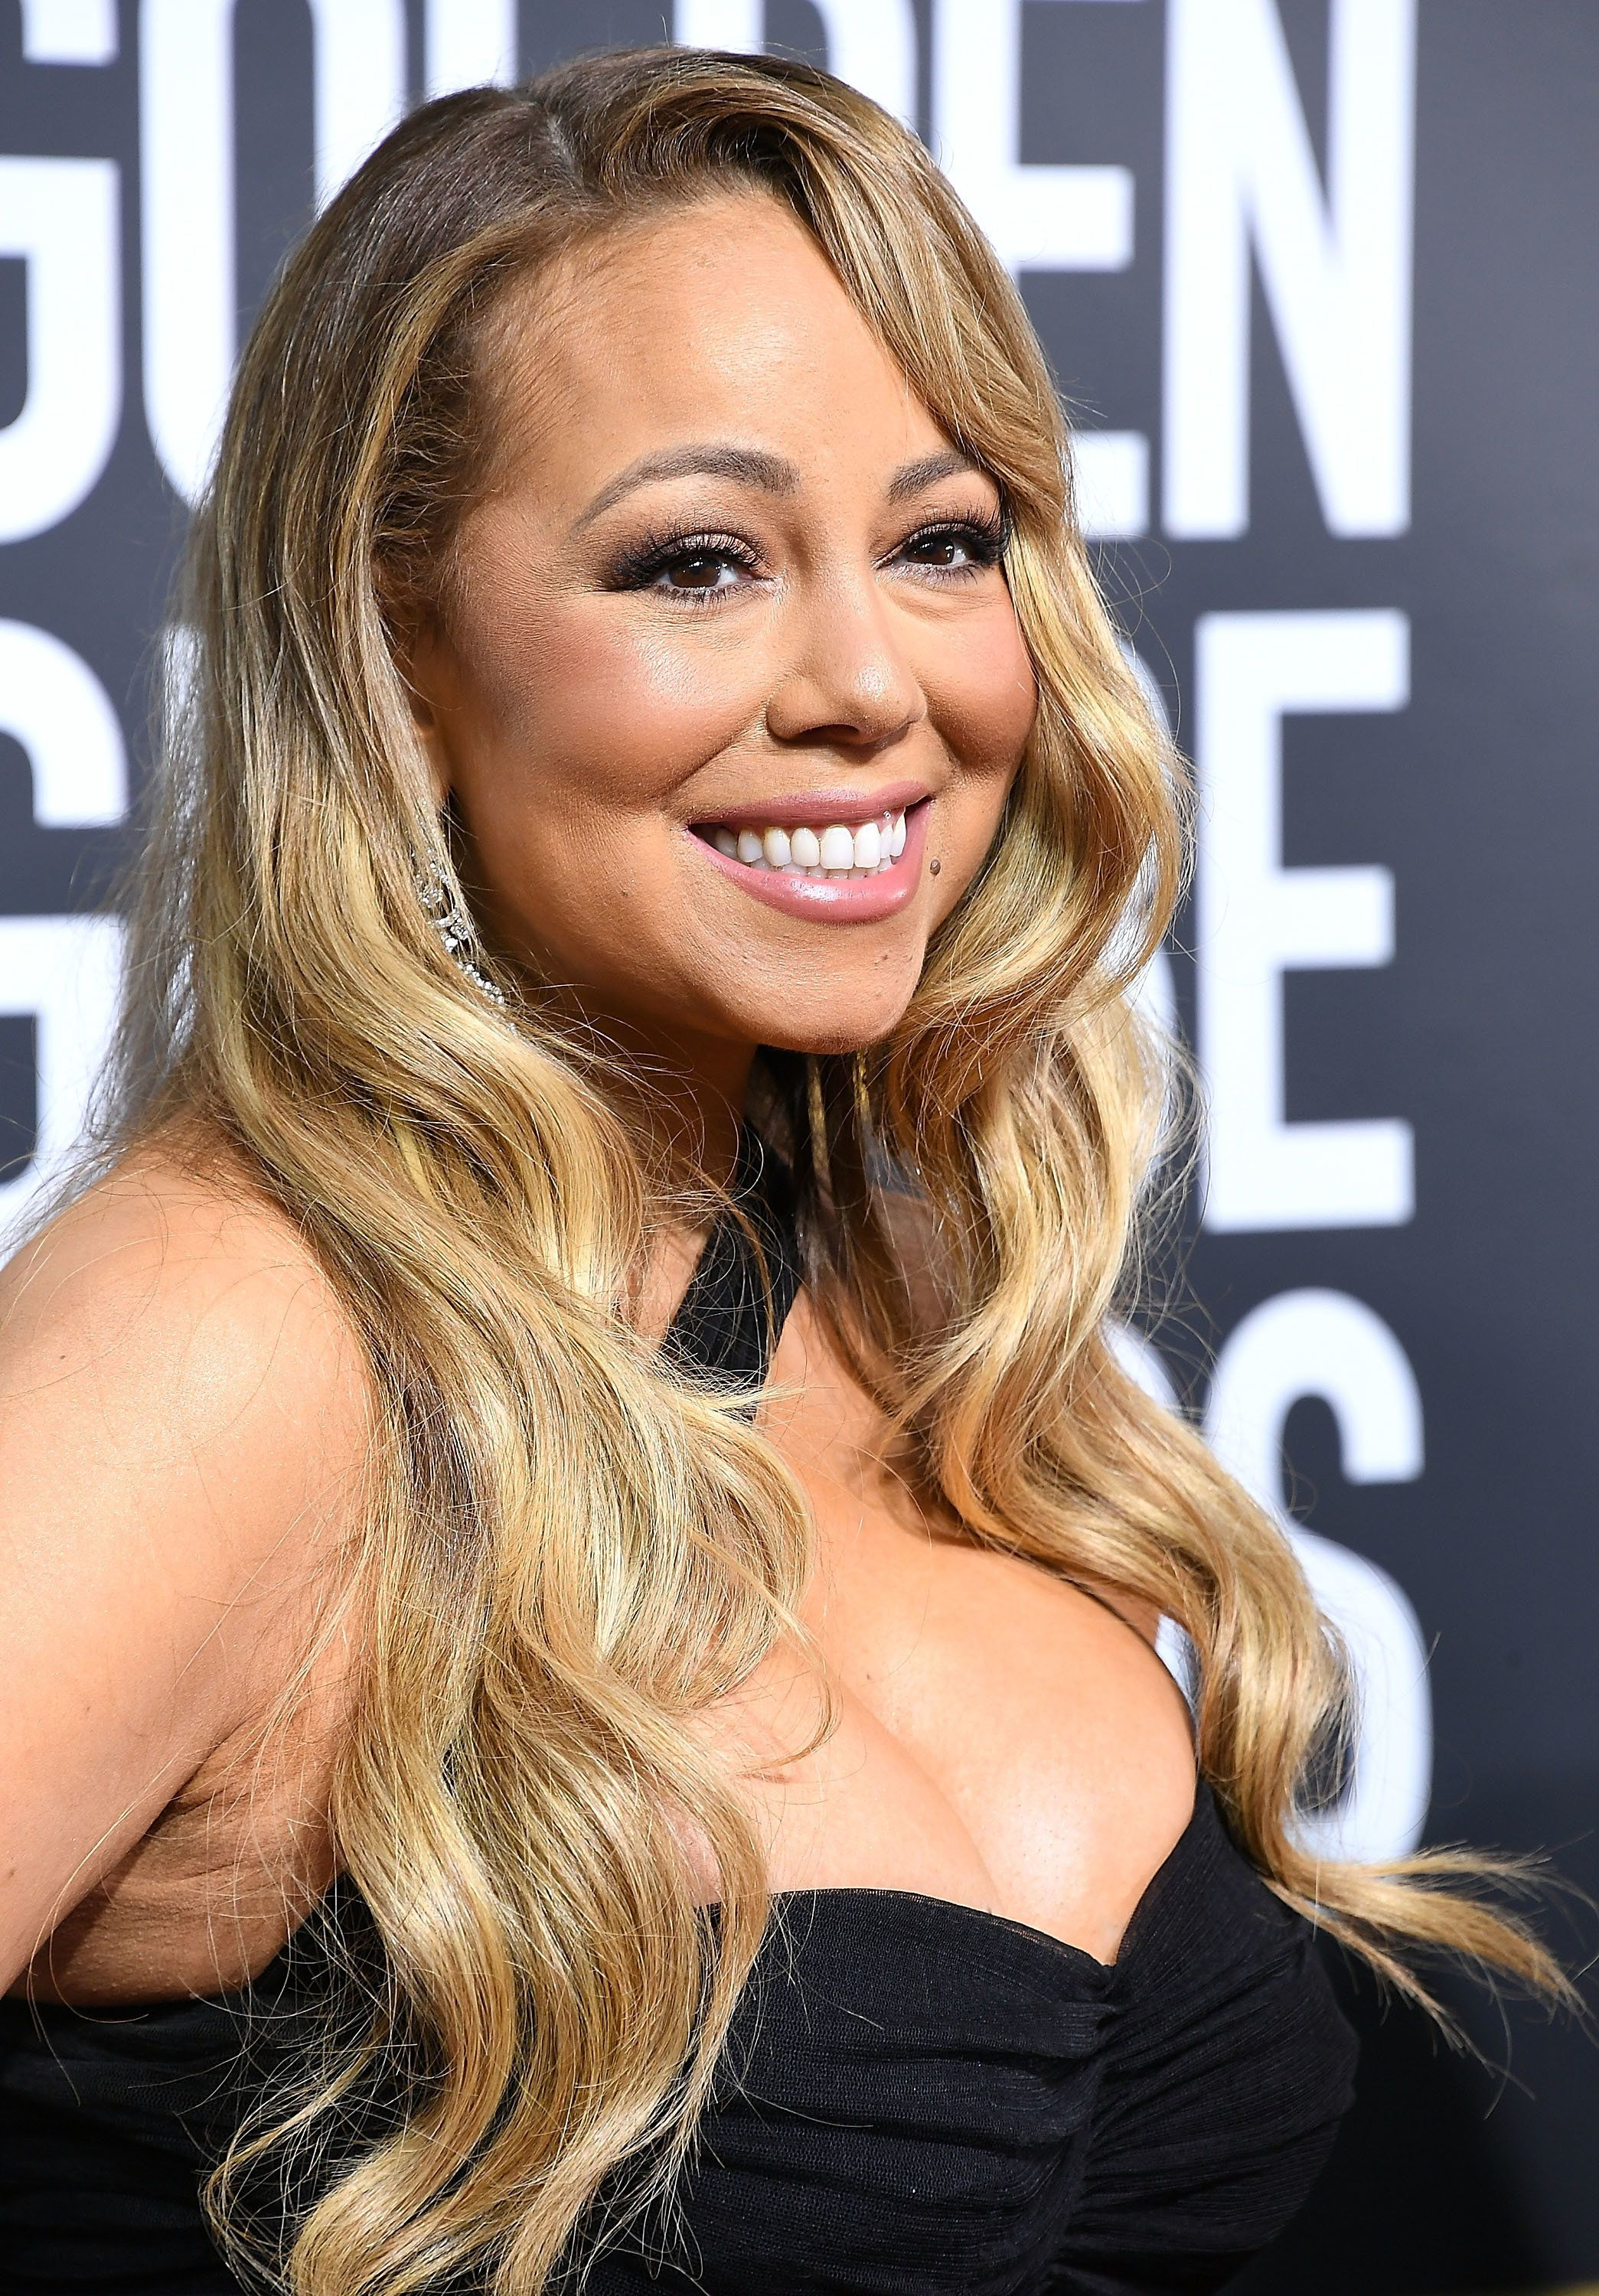 BEVERLY HILLS, CA - JANUARY 07:  Mariah Carey arrives at the 75th Annual Golden Globe Awards at The Beverly Hilton Hotel on January 7, 2018 in Beverly Hills, California.  (Photo by Steve Granitz/WireImage)